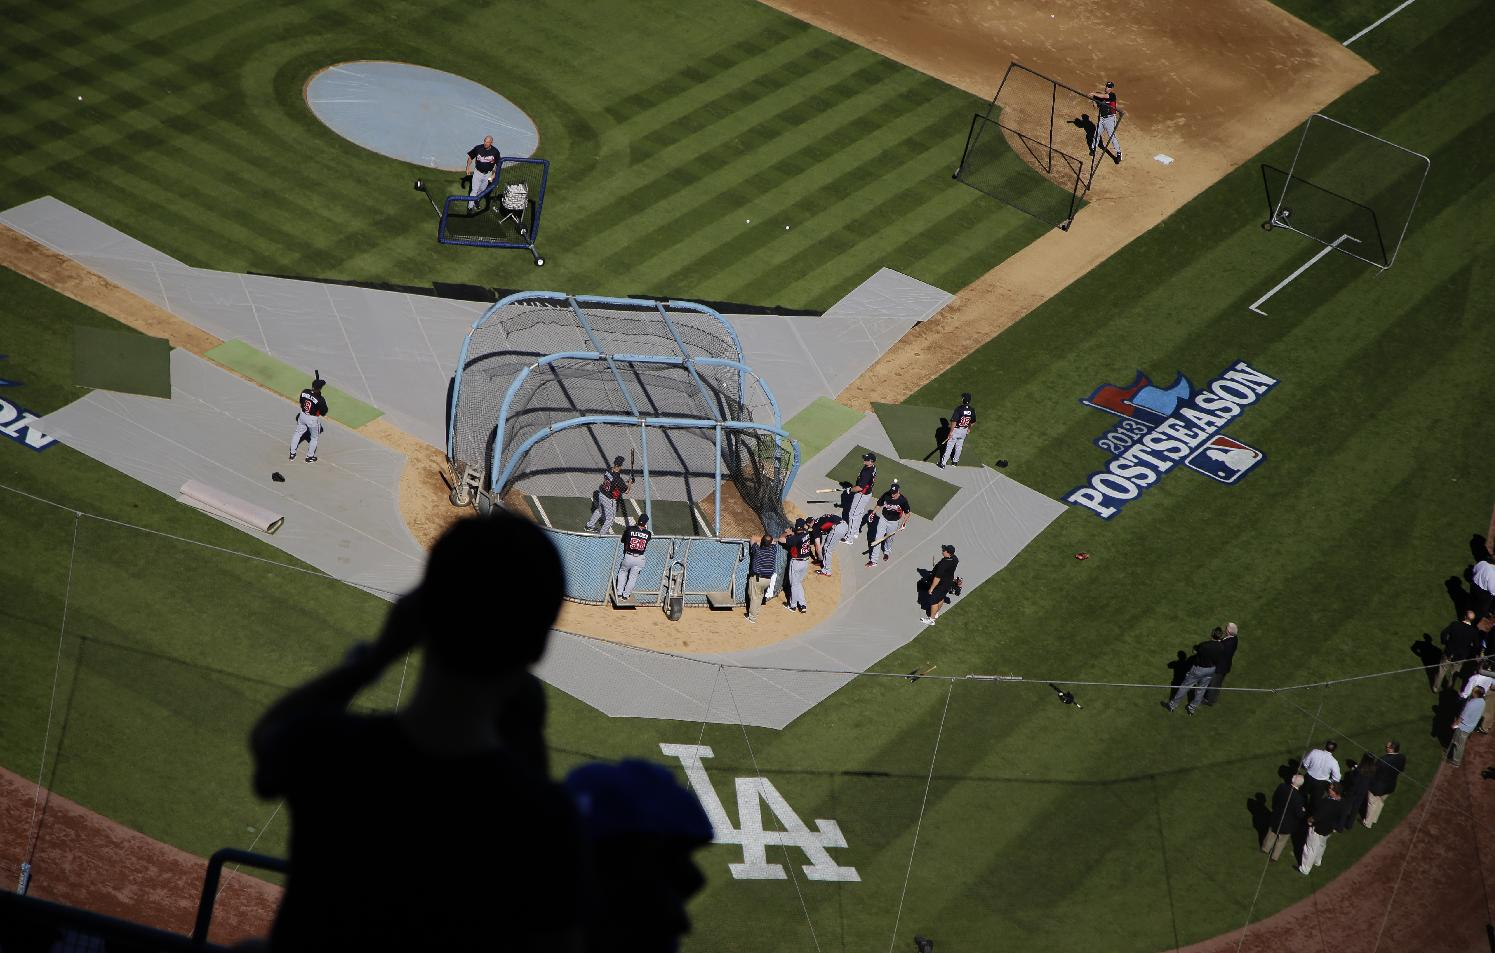 A fan is silhouetted as the Atlanta Braves take batting practice before Game 3 of the National League division baseball series against the Los Angeles Dodgers, Sunday, Oct. 6, 2013, in Los Angeles